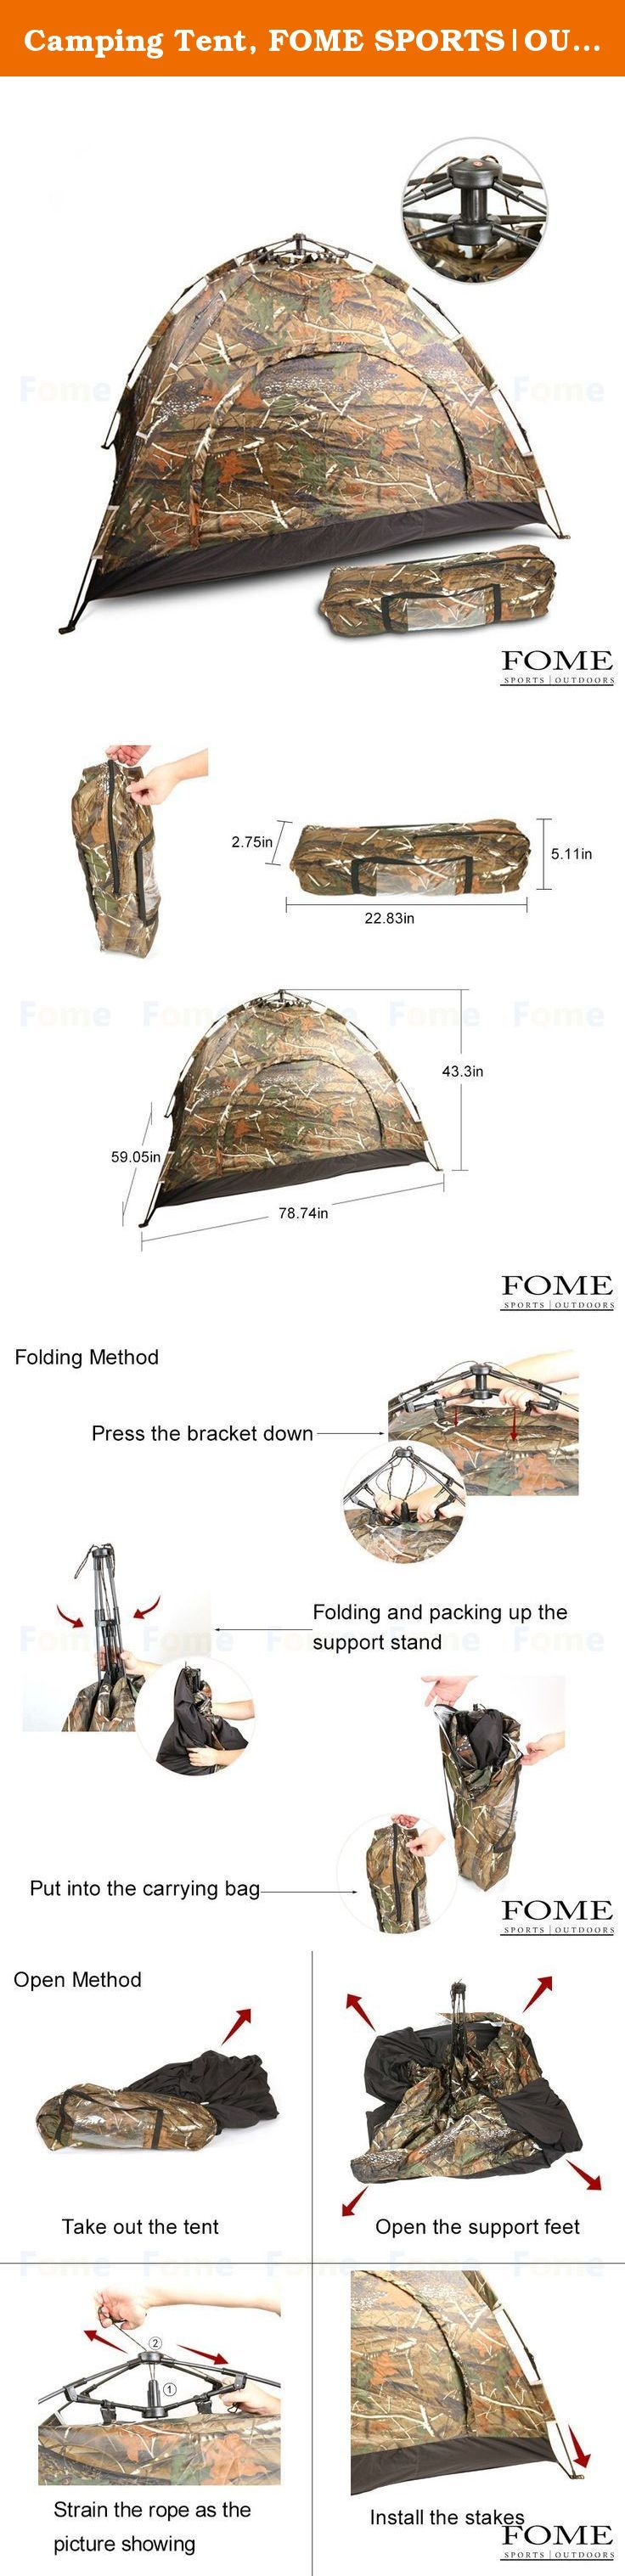 Camping Tent, FOME SPORTS|OUTDOORS Lightweight 2 Person Automatic Outdoor Waterproof Folding Family Pop up Tent for Travel Camping Camouflage One Year Warranty. Camping Tent, FOME SPORTS|OUTDOORS Lightweight 2 Person Automatic Outdoor Waterproof Folding Family Pop up Tent for Travel Camping Camouflage One Year Warranty Features: This tent is a necessity product on your next outdoor adventure Ideal for camping and outdoor activities Classic dome design and automatic opening system…